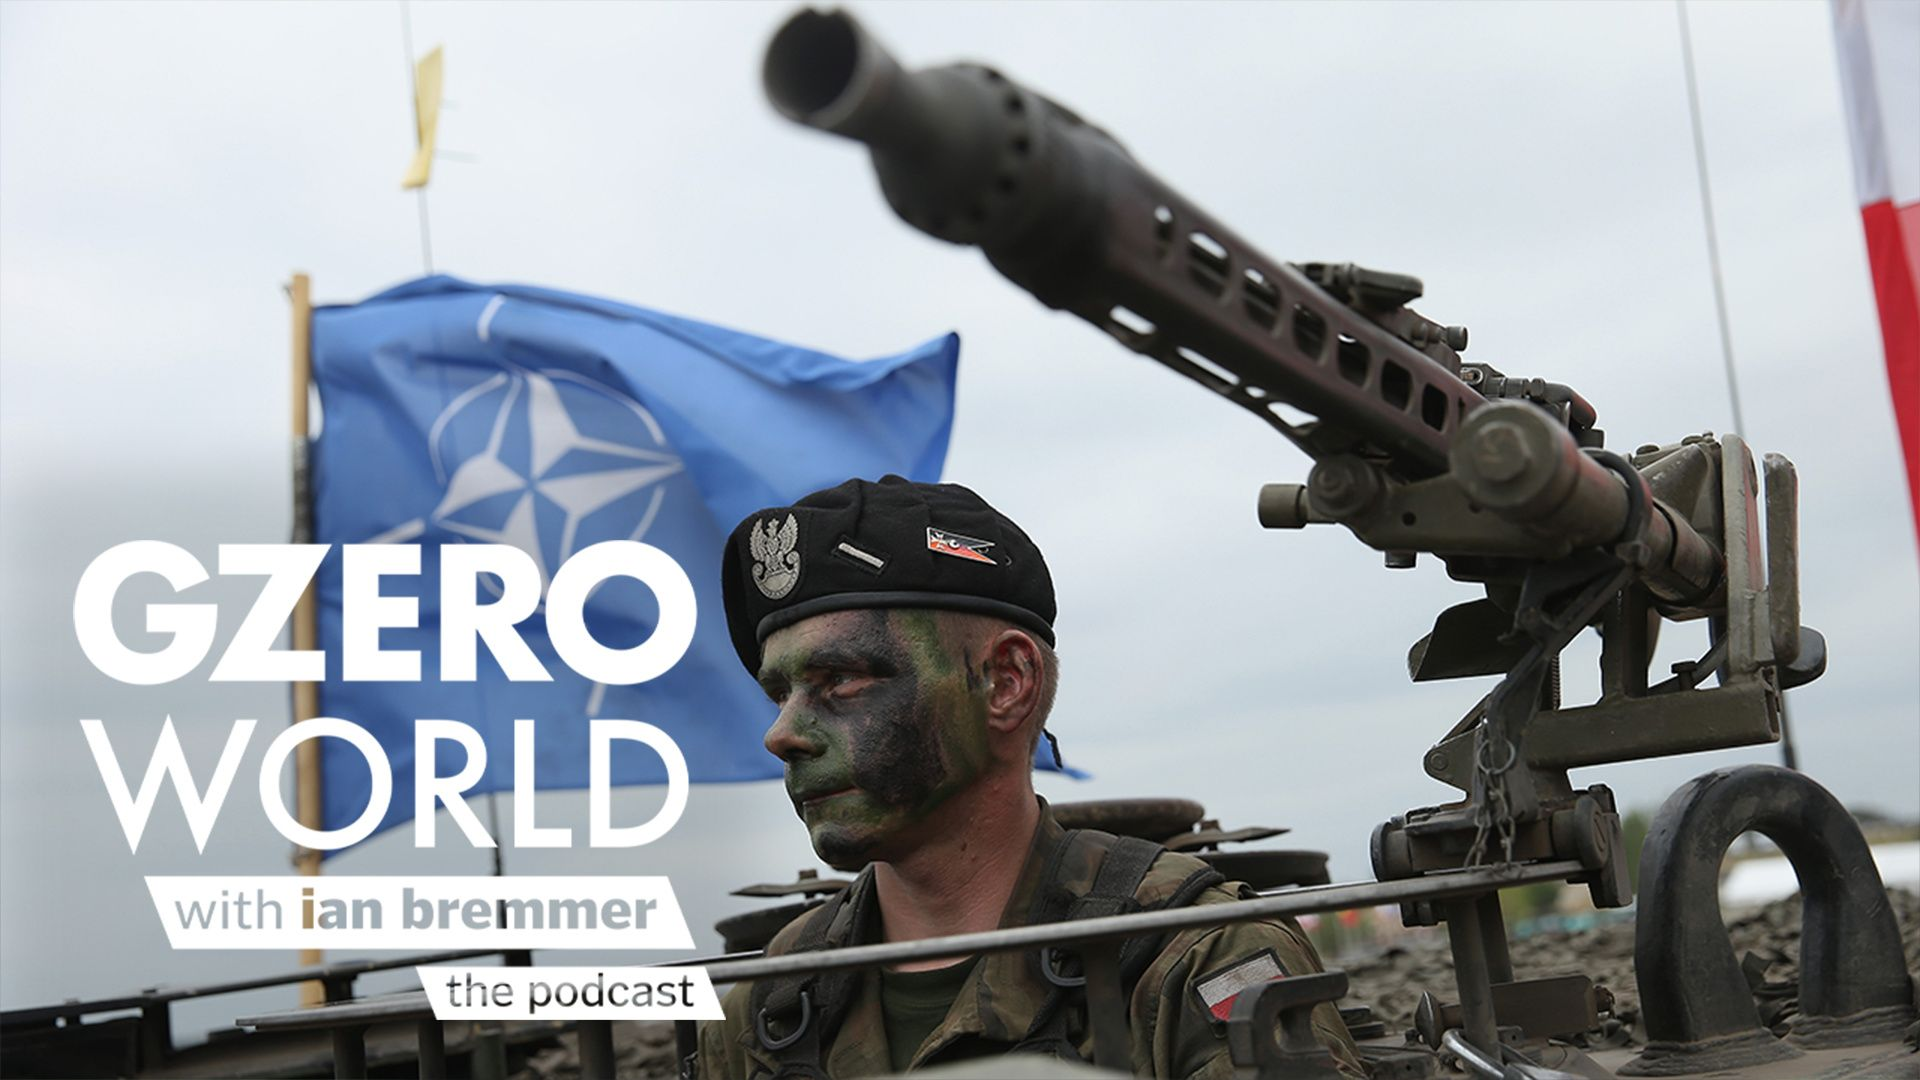 Podcast: Will NATO Adapt to Emerging Global Threats? Secretary General Jens Stoltenberg's Perspective